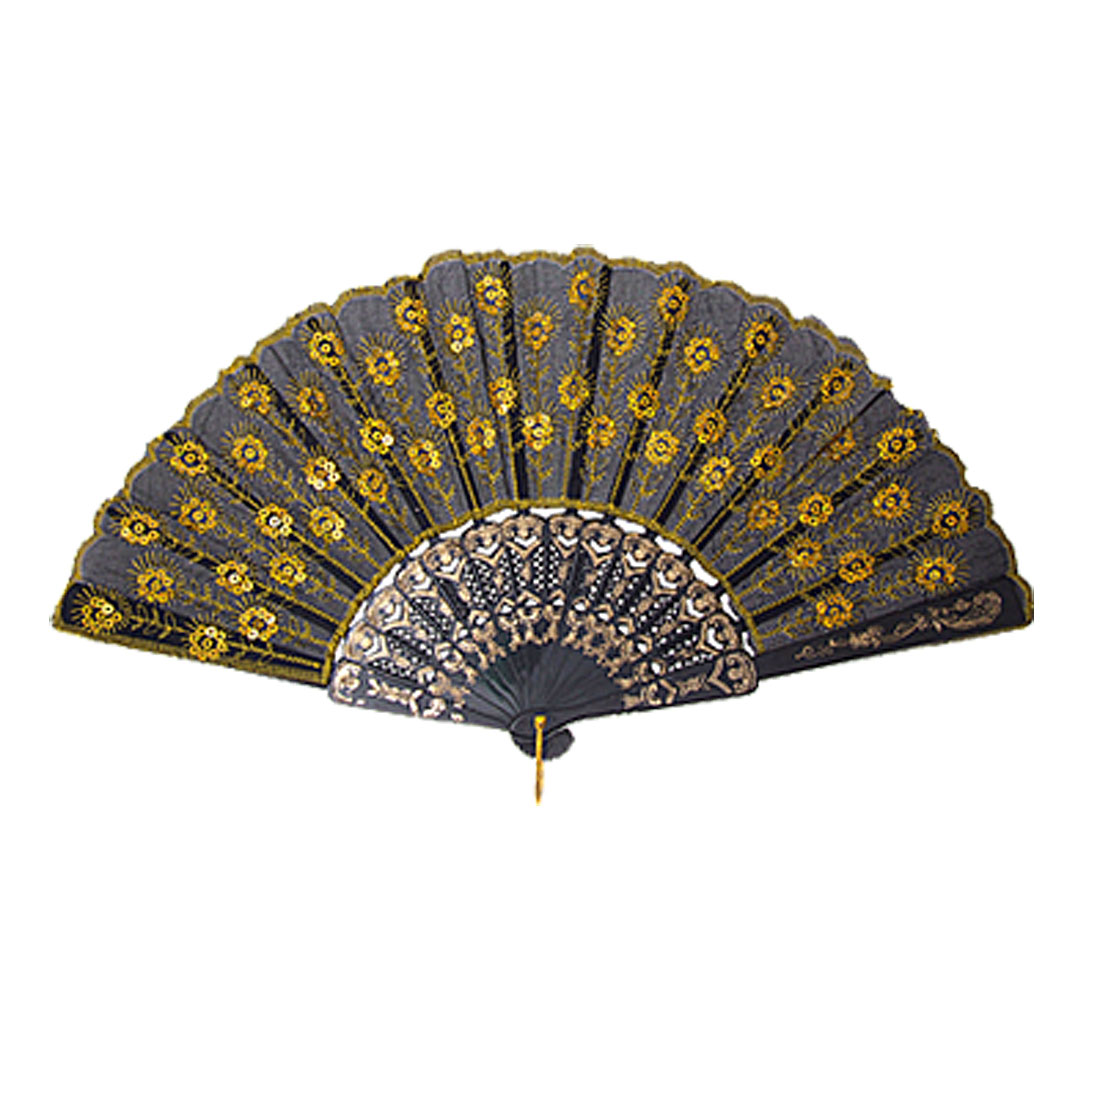 Black Peacock Style Cloth Yellow Sequin Embroider Hand Fan